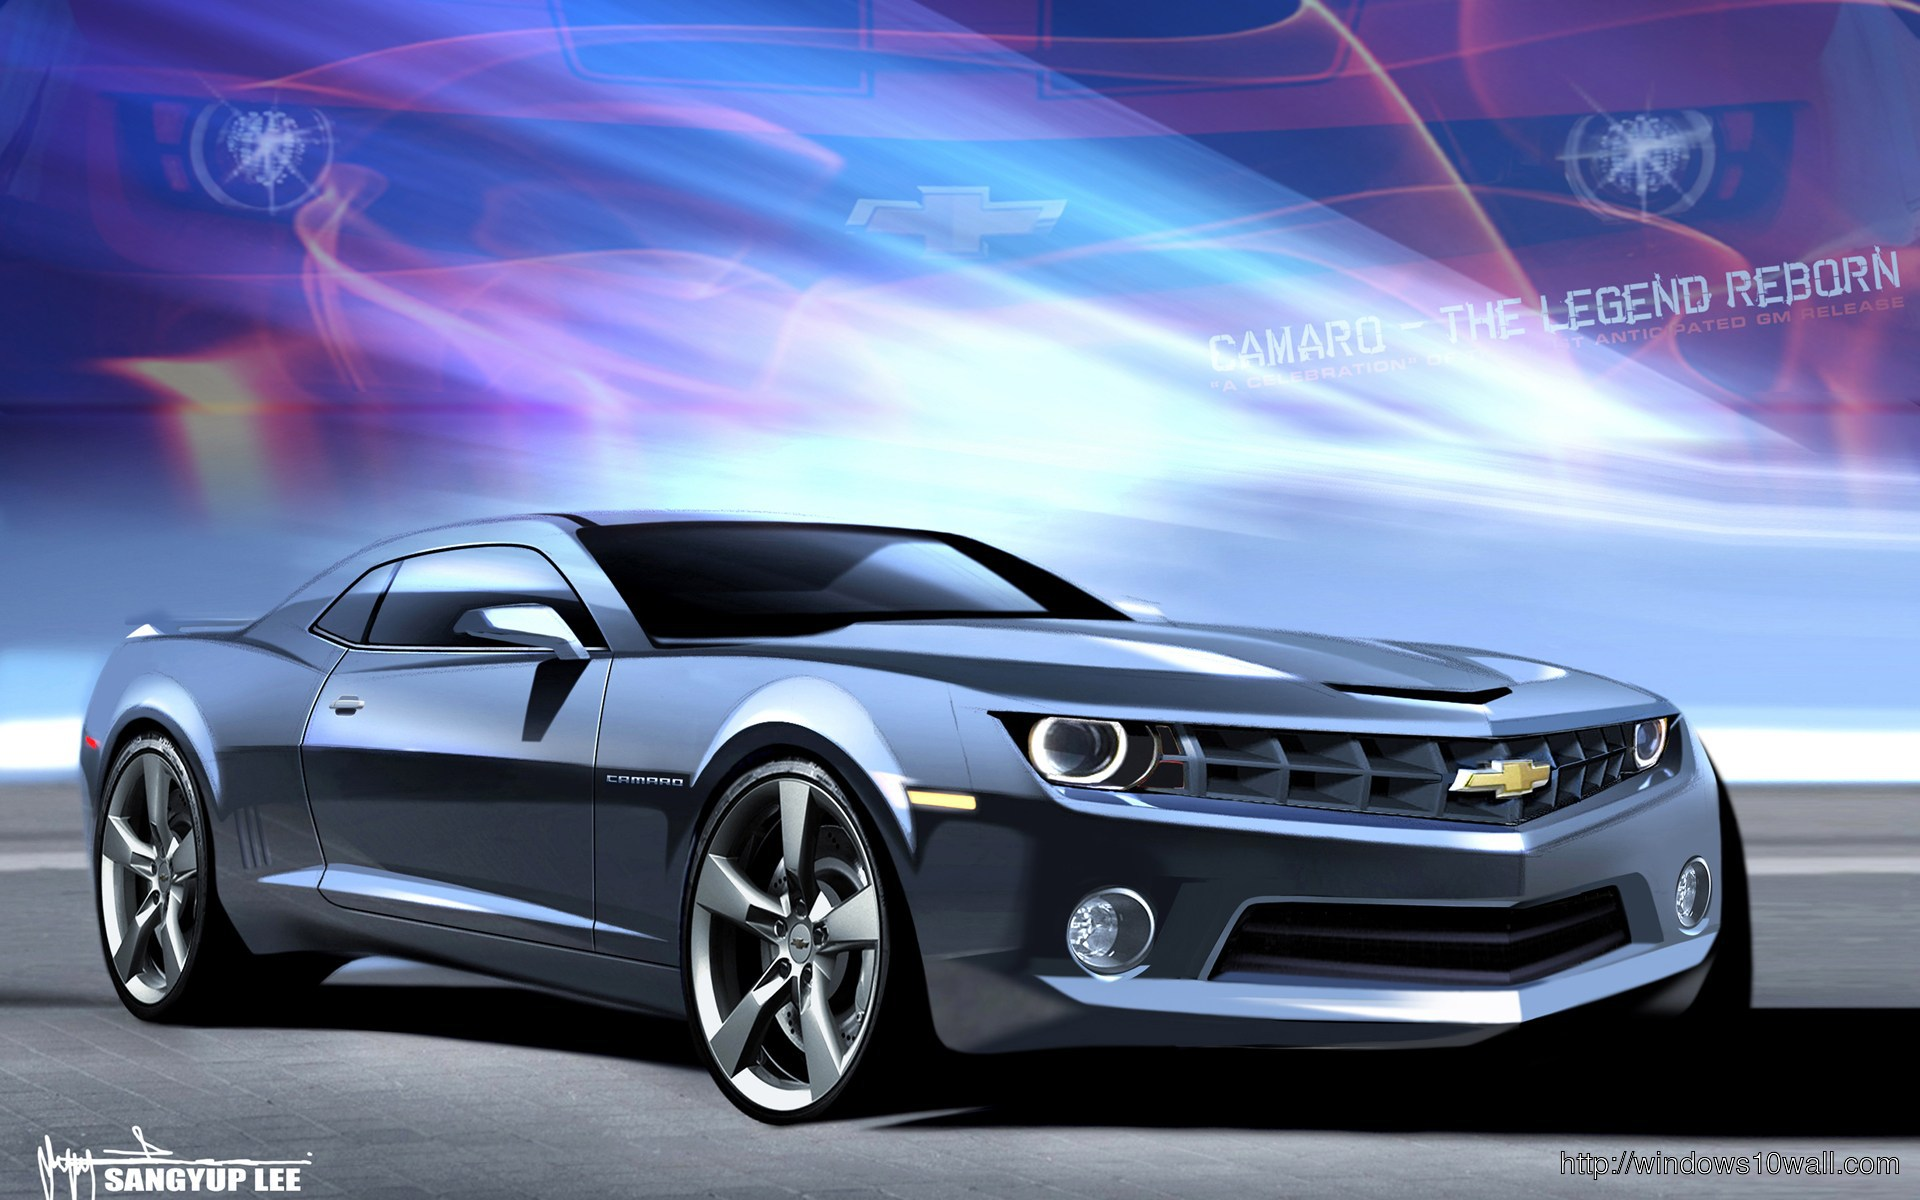 Chevrolet Silverado Background Wallpaper